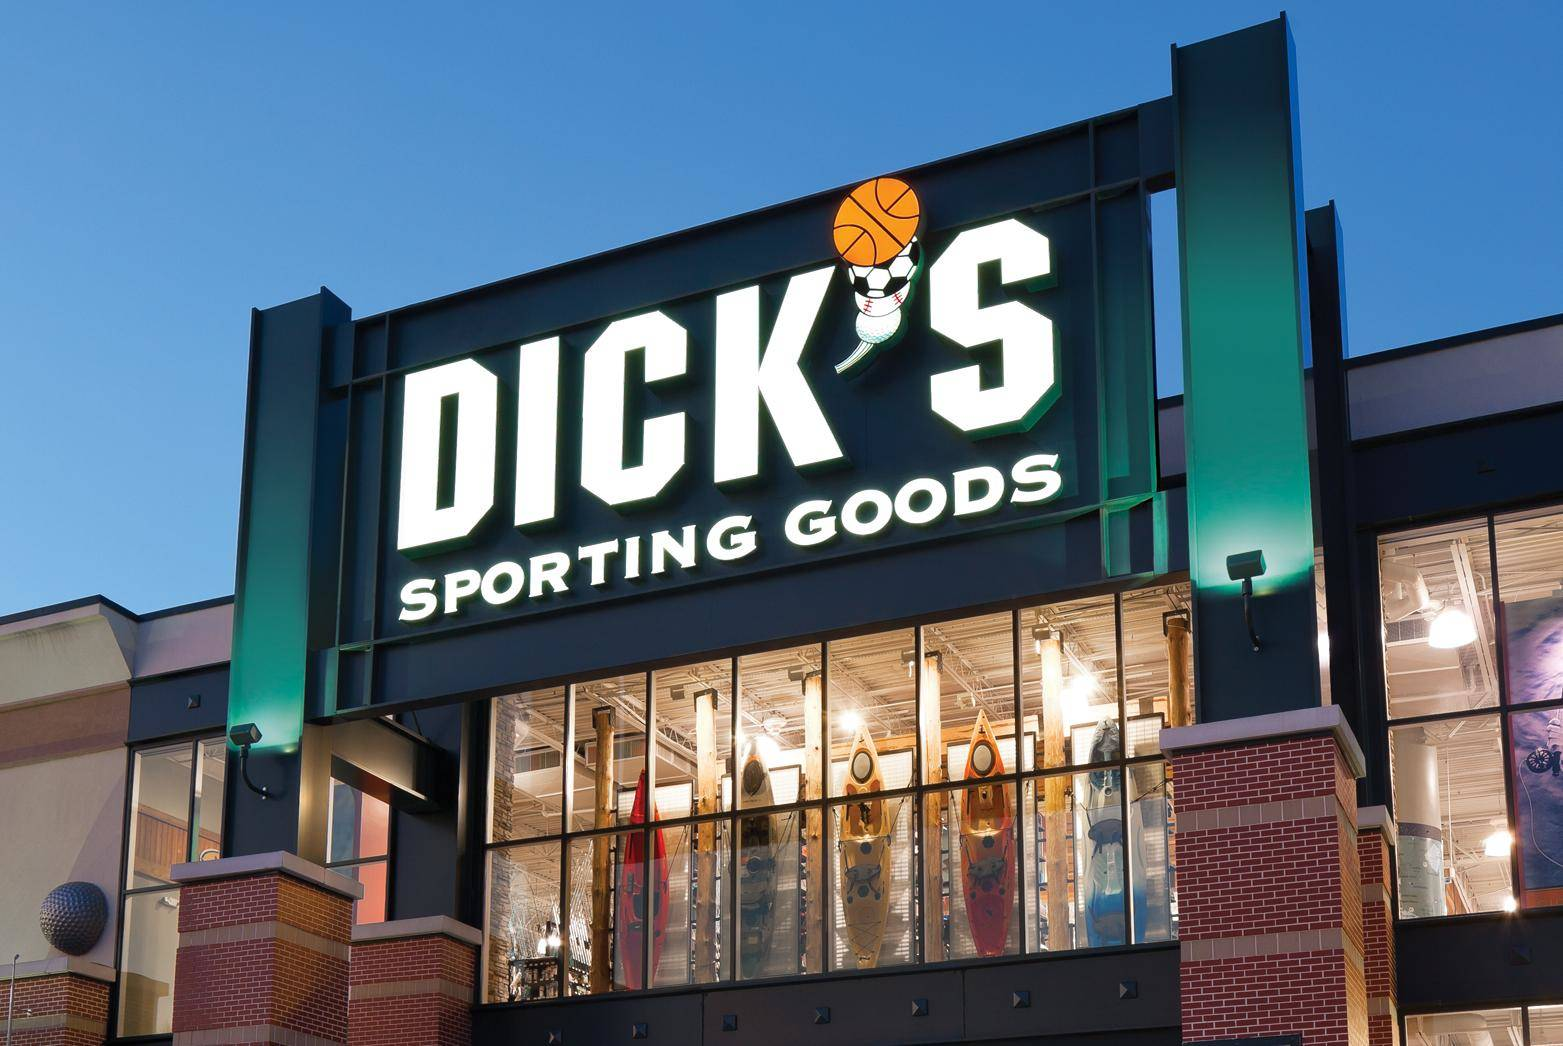 Find the latest Dicks Sporting Goods promo codes and verified coupons We find best deals so you can shop smarter at Dicks Offers verified by our own community